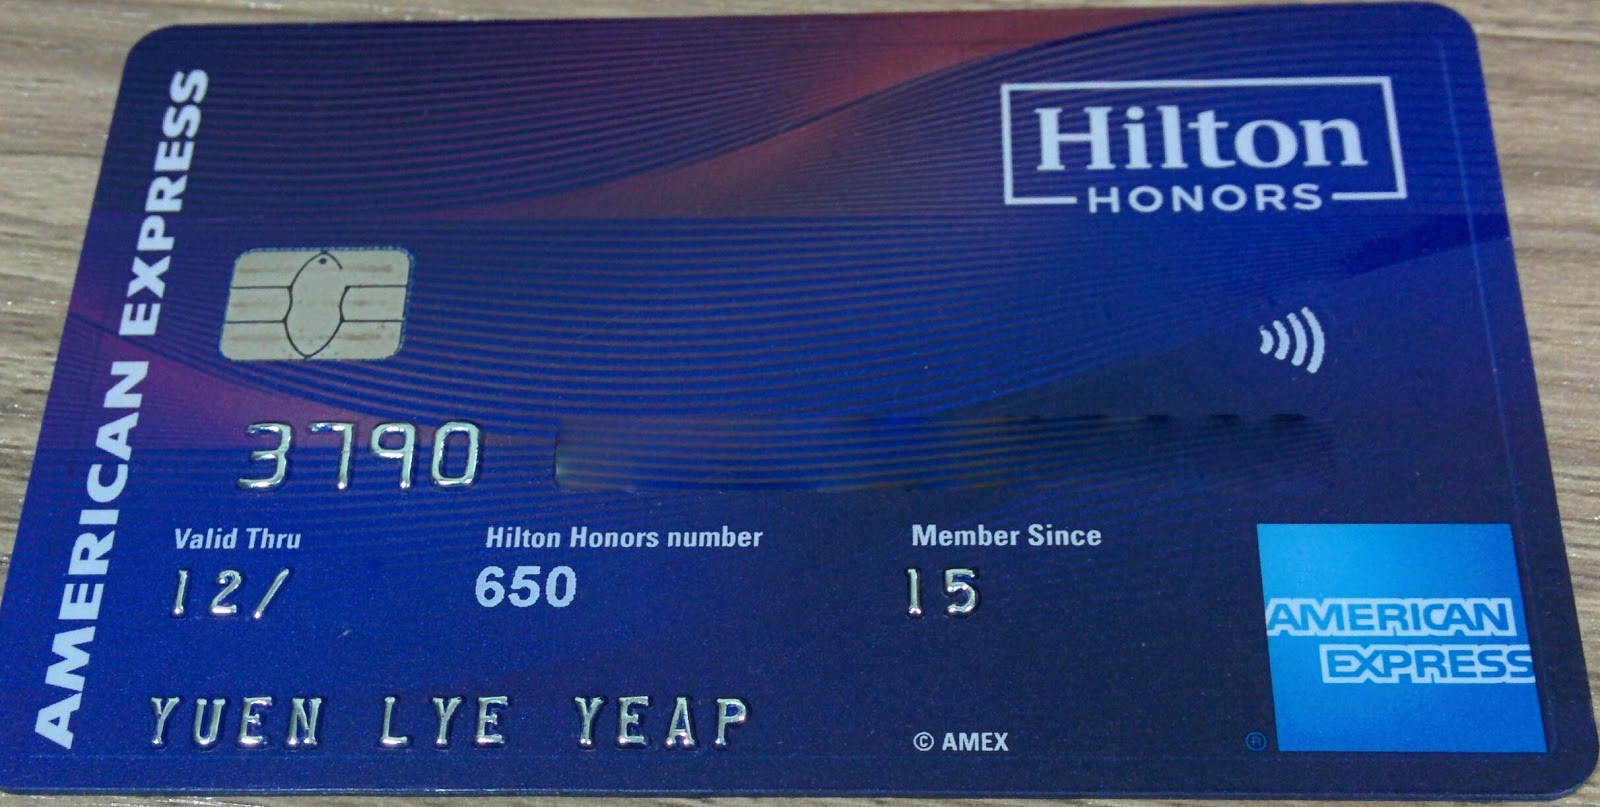 Why we love the American Express Hilton Honors Aspire credit card